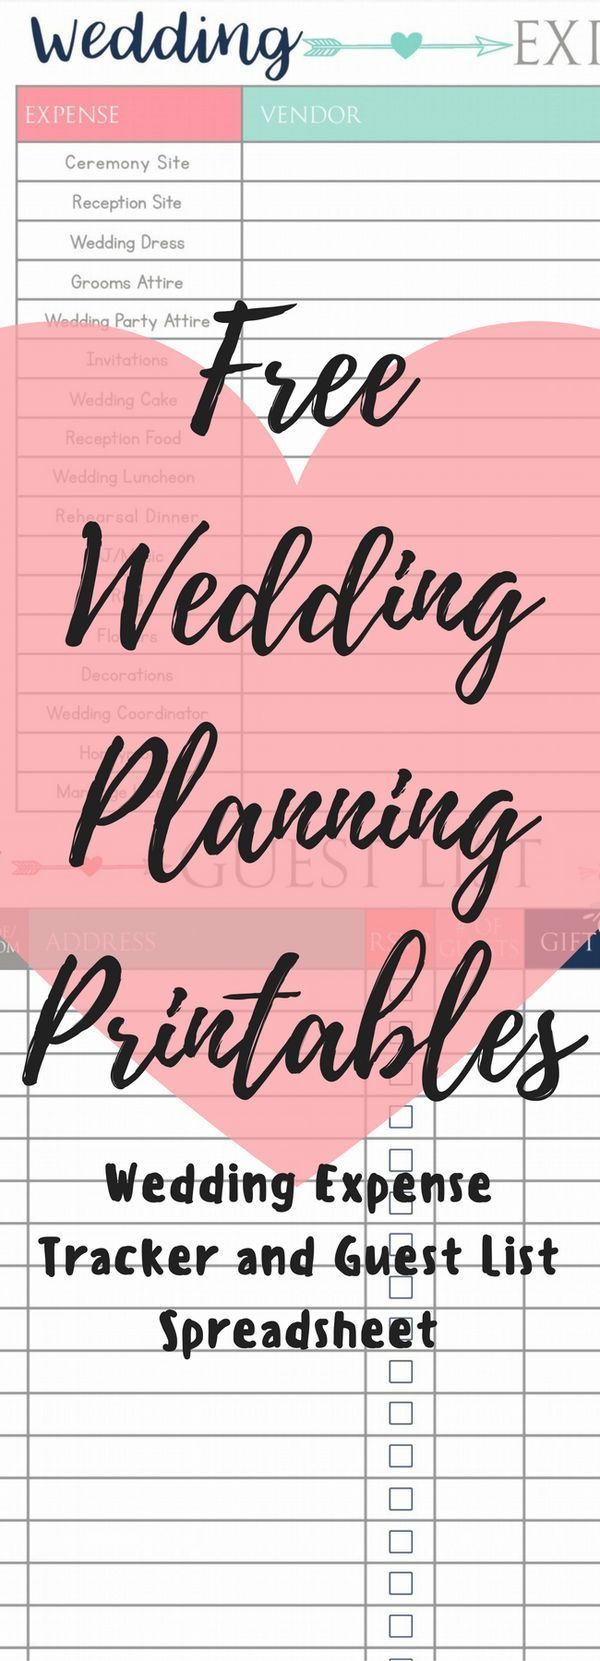 Wedding Planning Printables